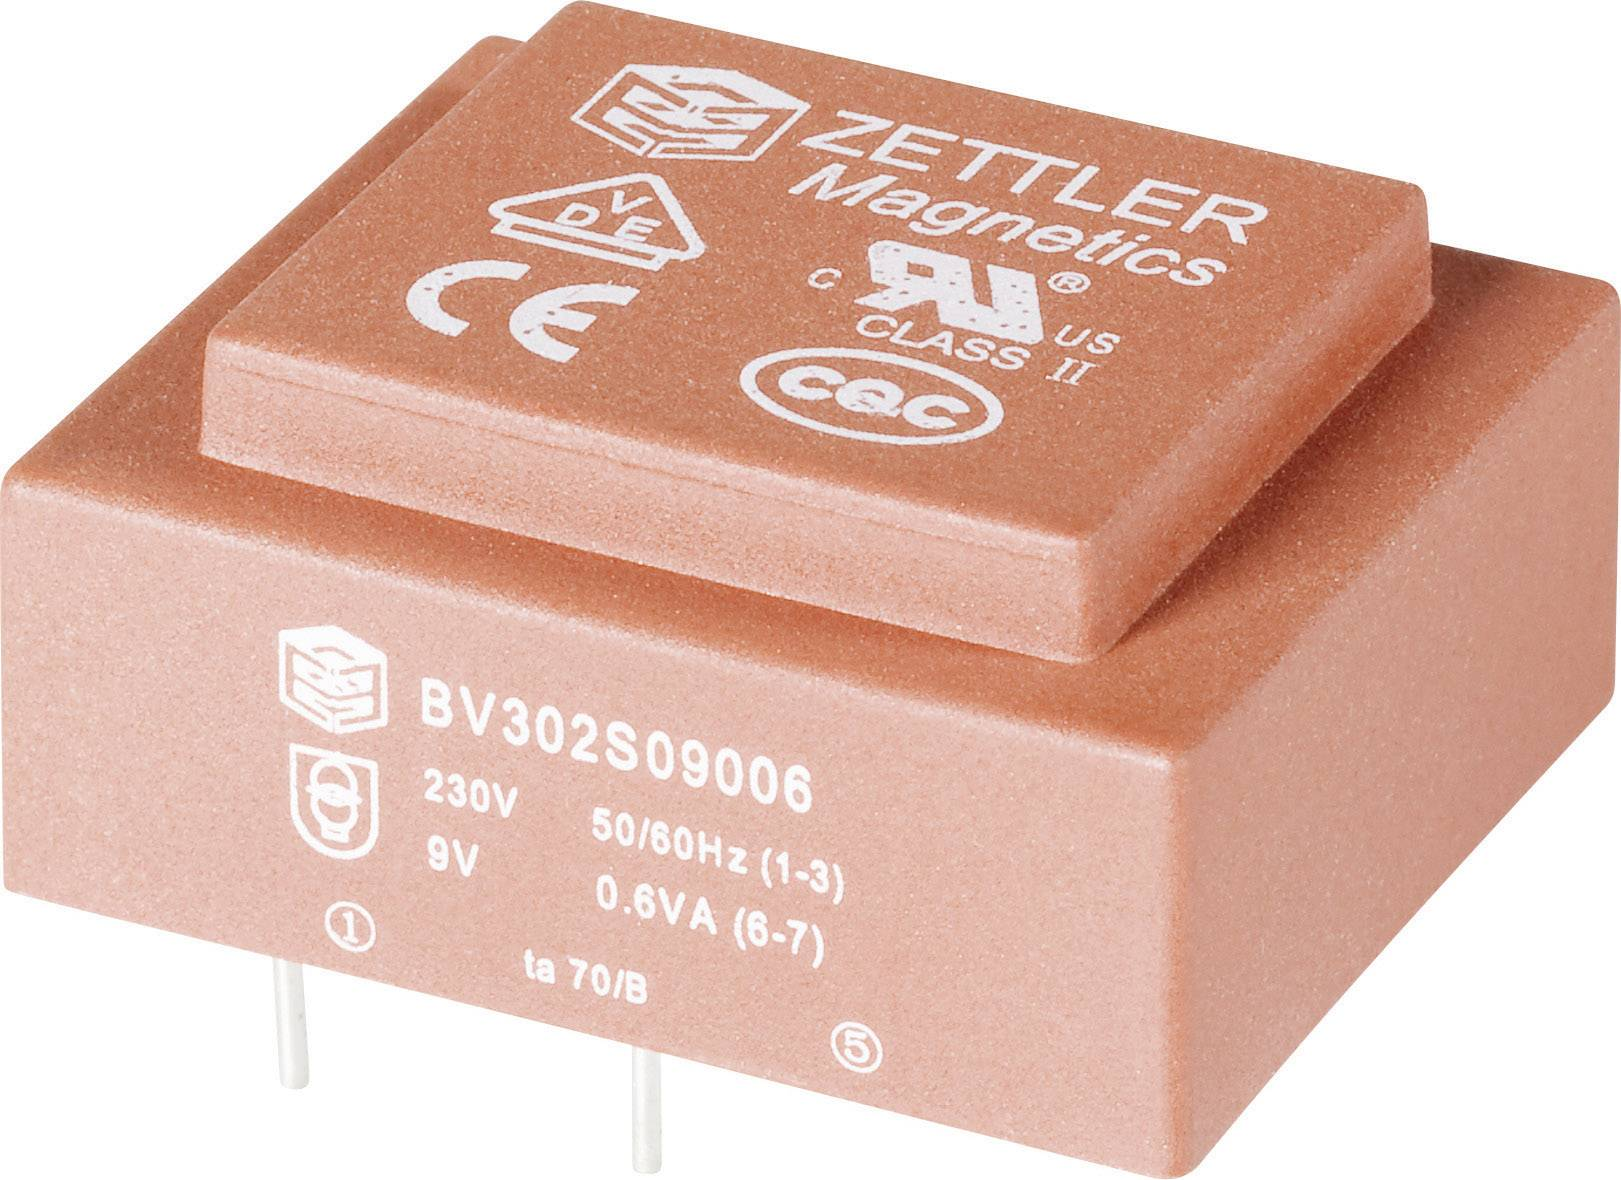 Transformátor do DPS Zettler Magnetics El30, 230 V/15 V, 40 mA, 1 VA